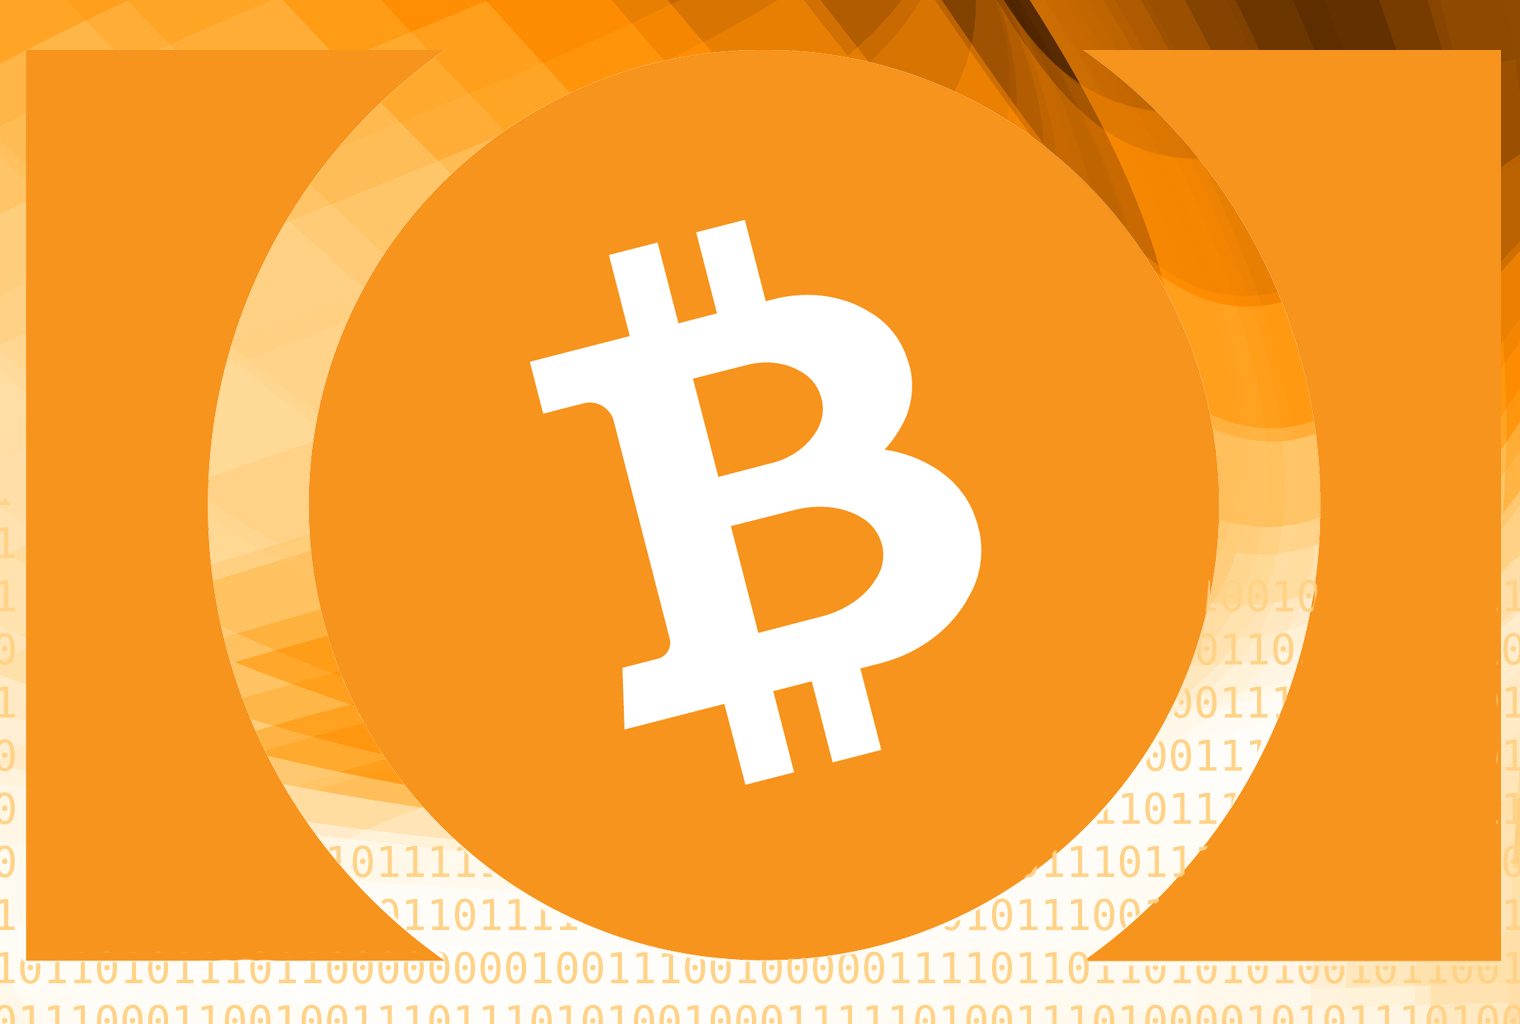 These Myth-Busting Articles Dispel Common Bitcoin Myths